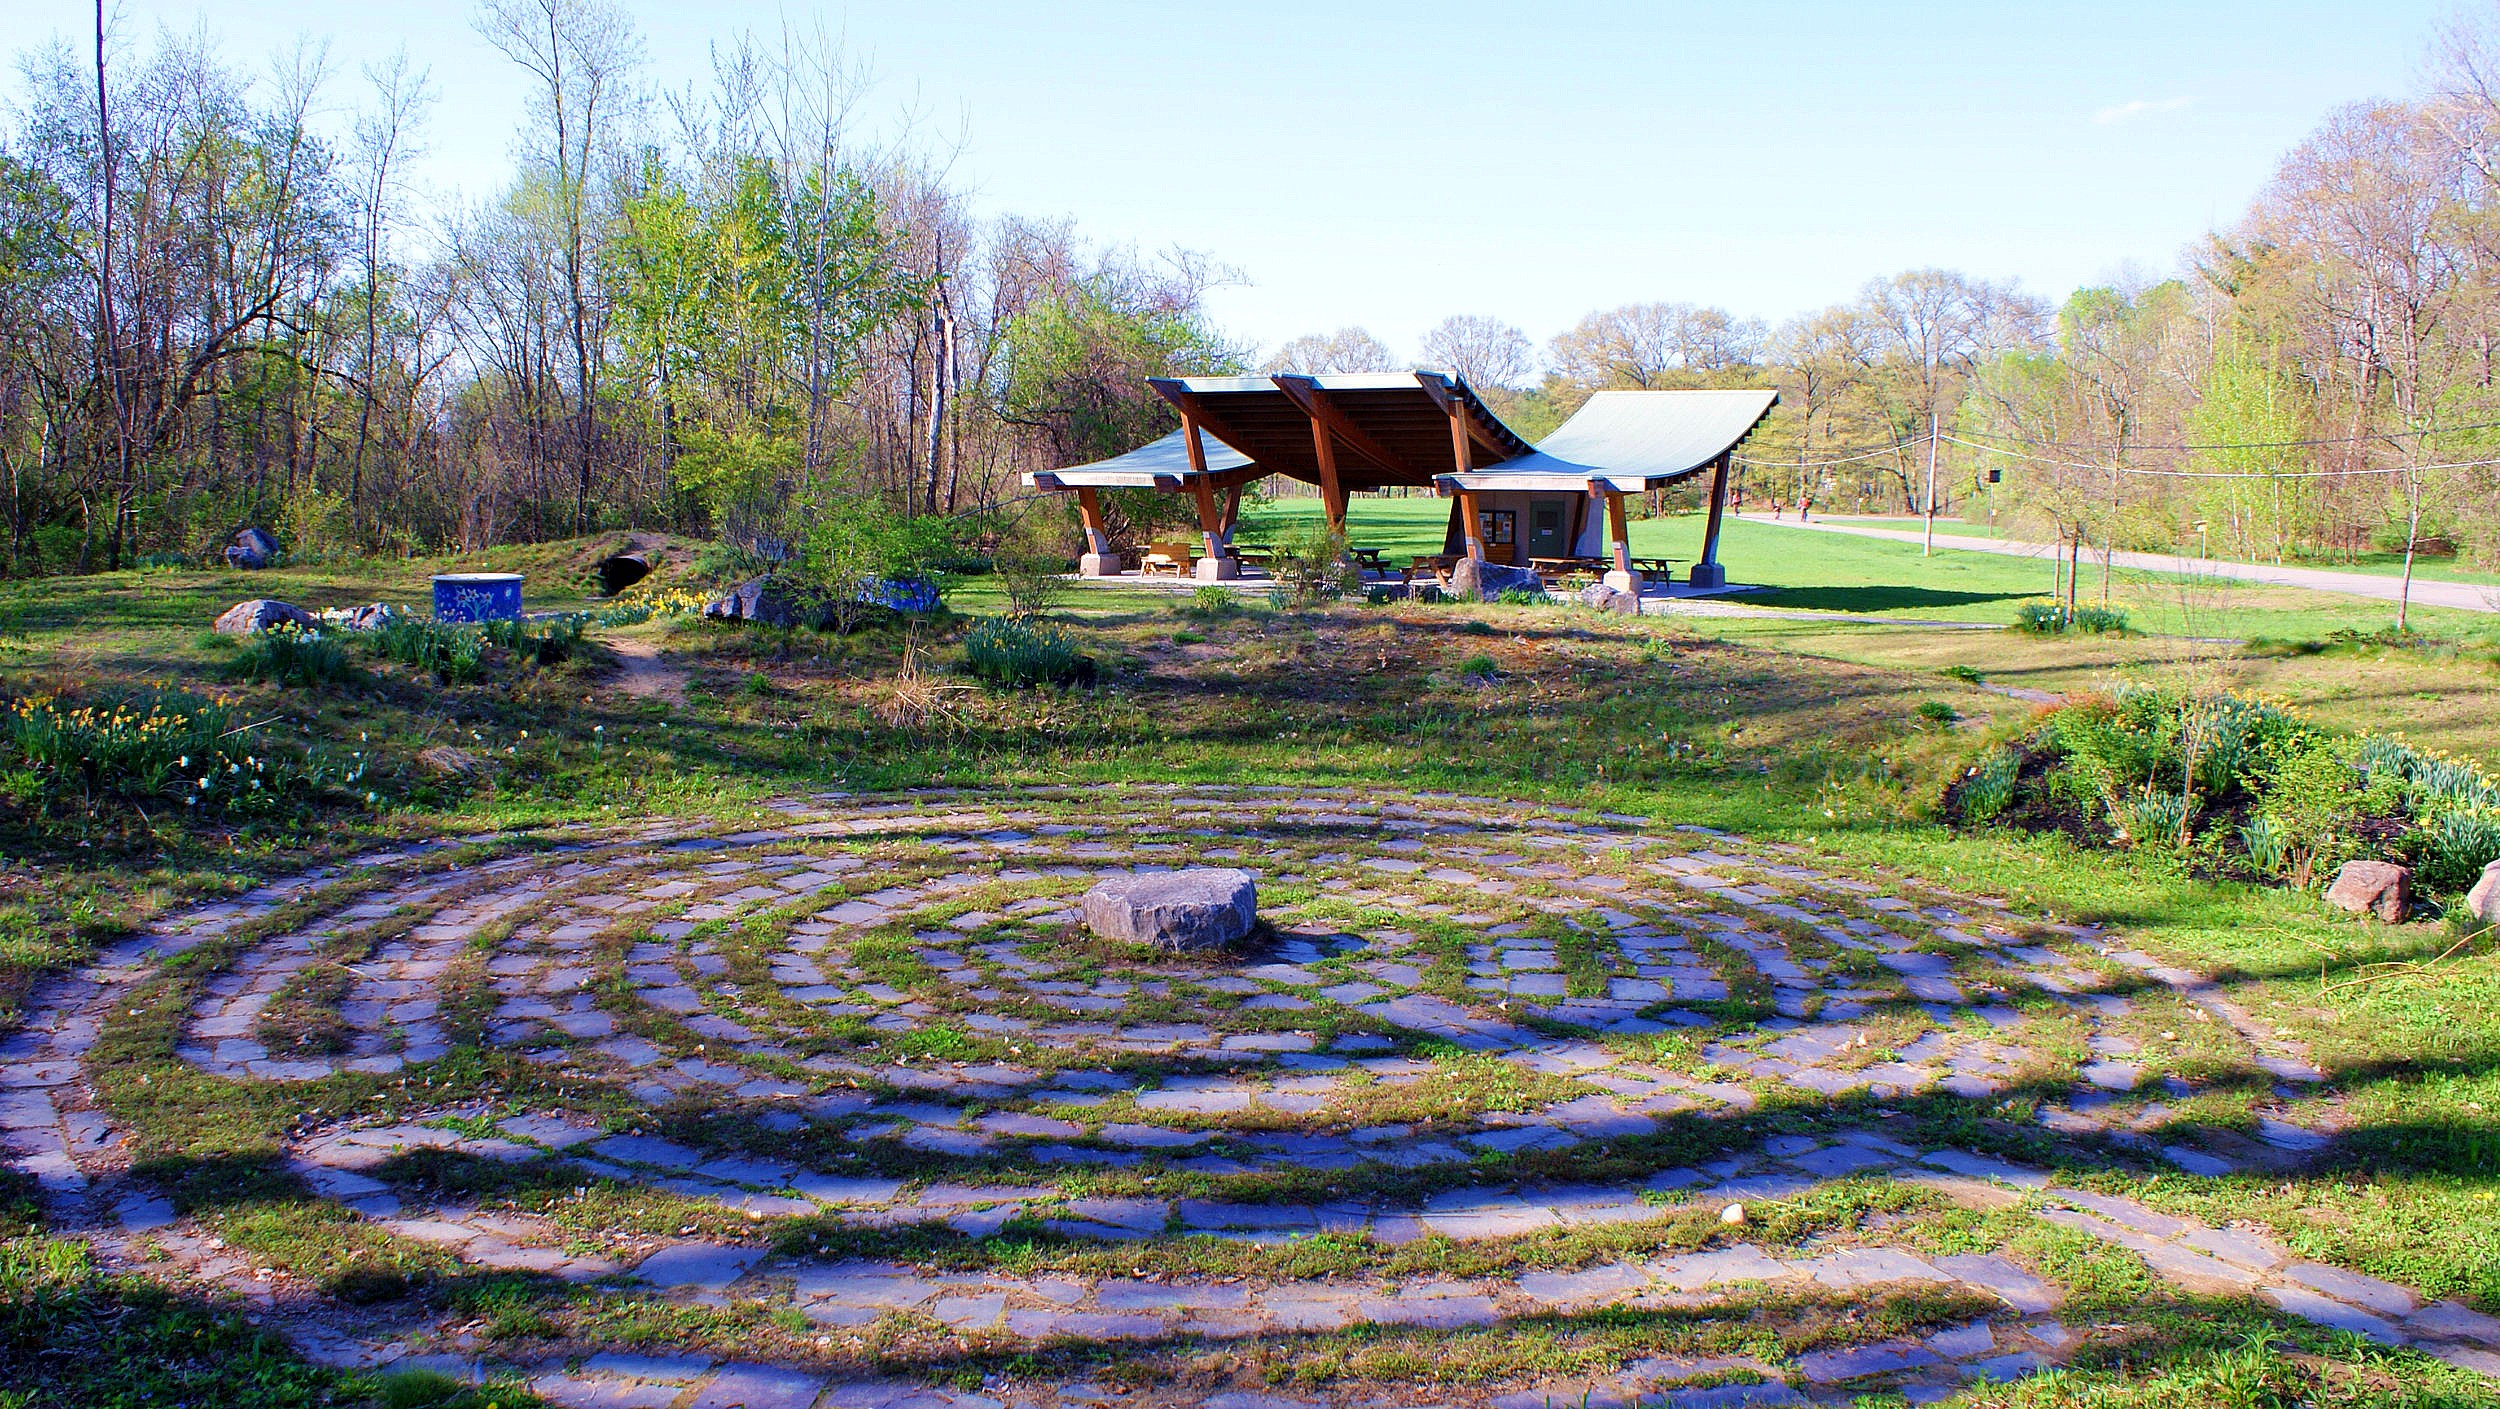 The labyrinth at Hudson Crossing Park